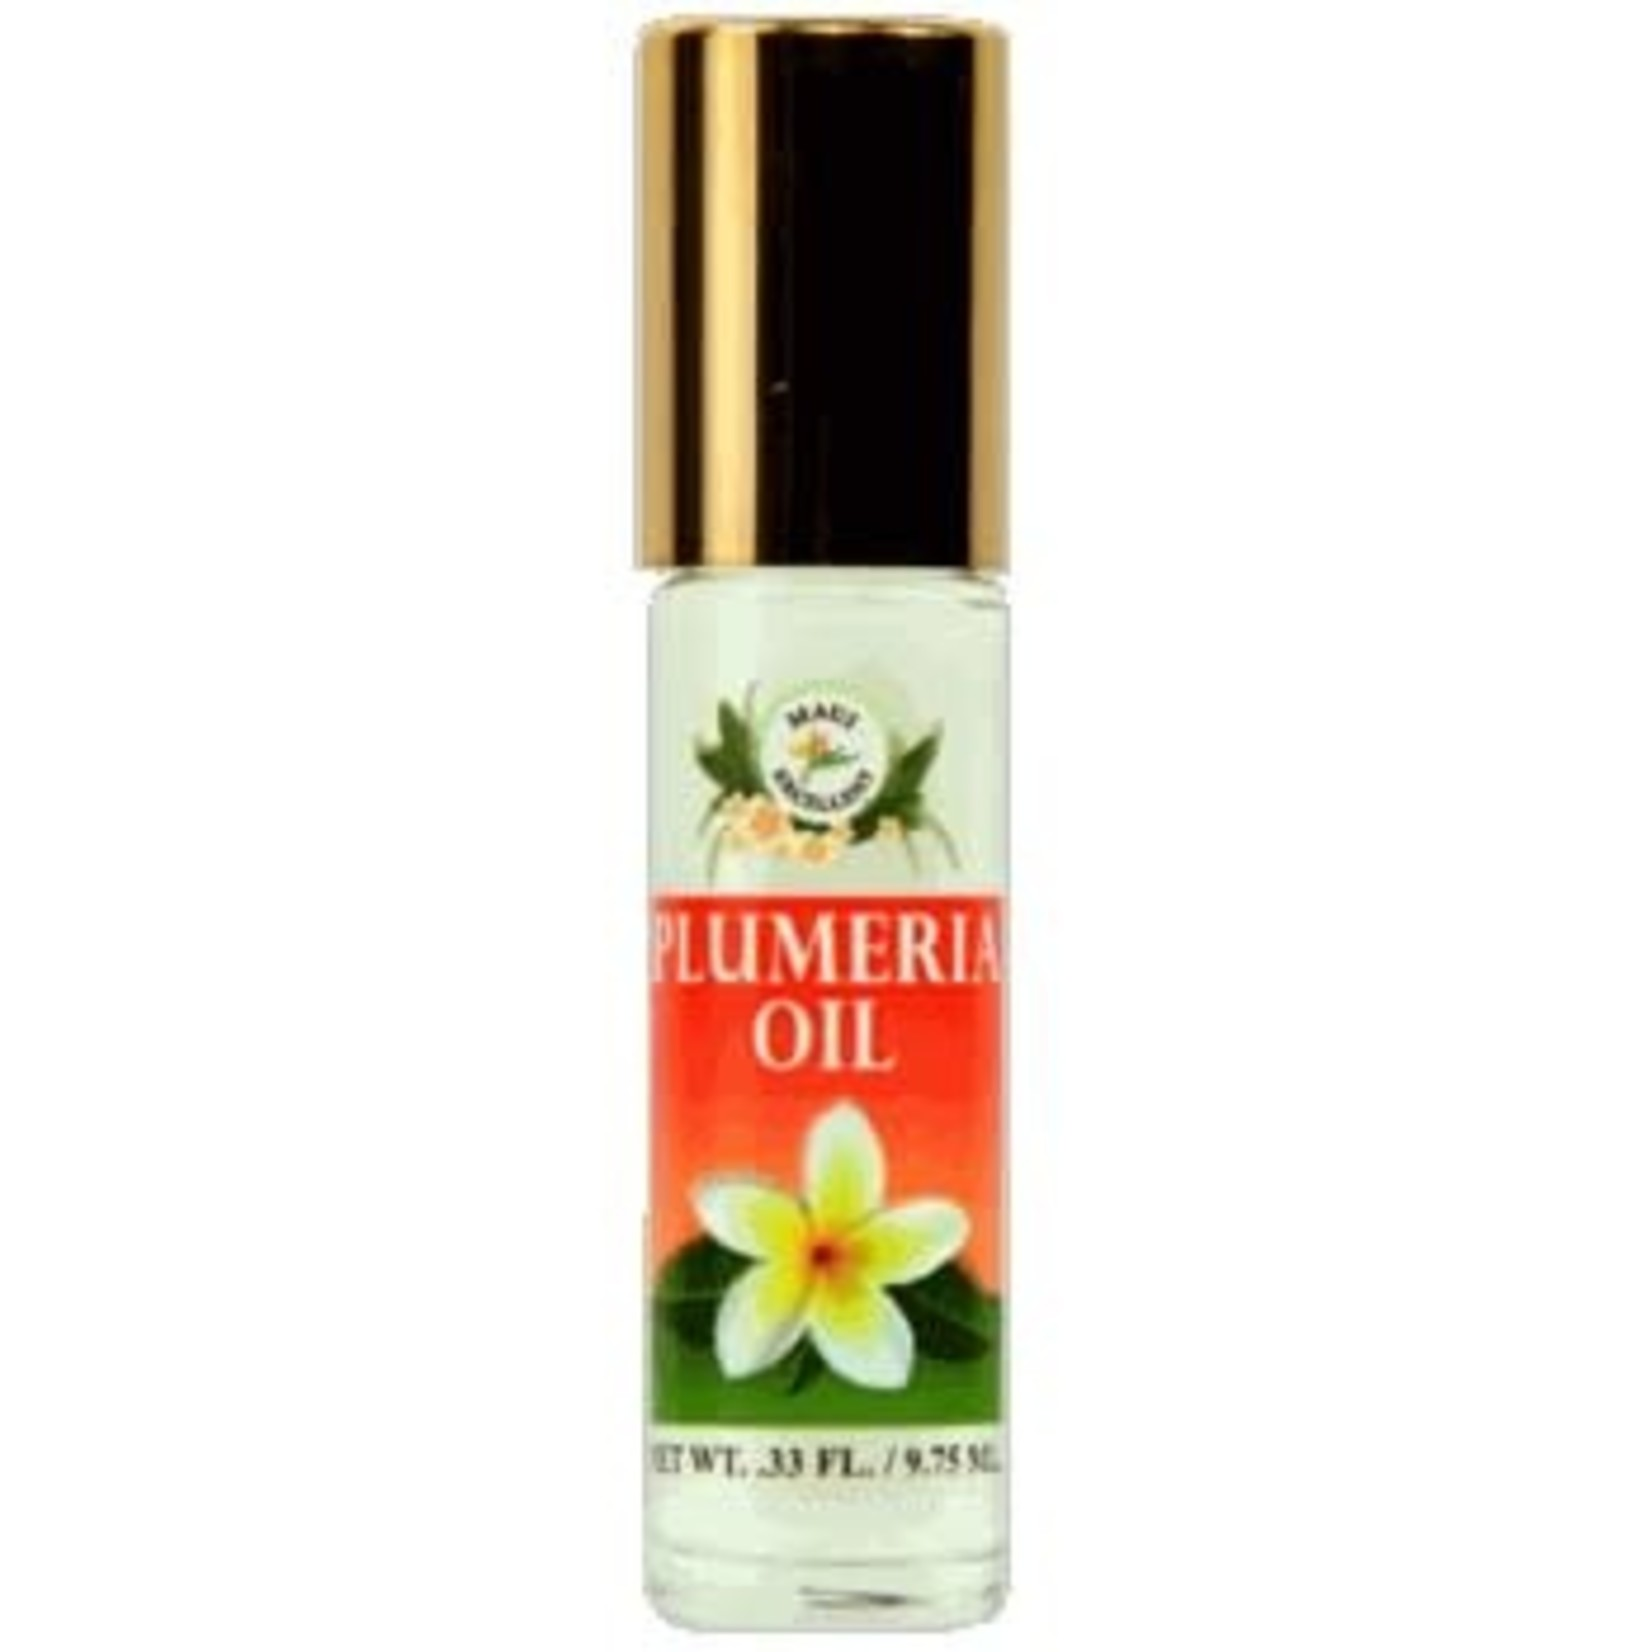 Maui Excellent, LLC Roll-On Oil